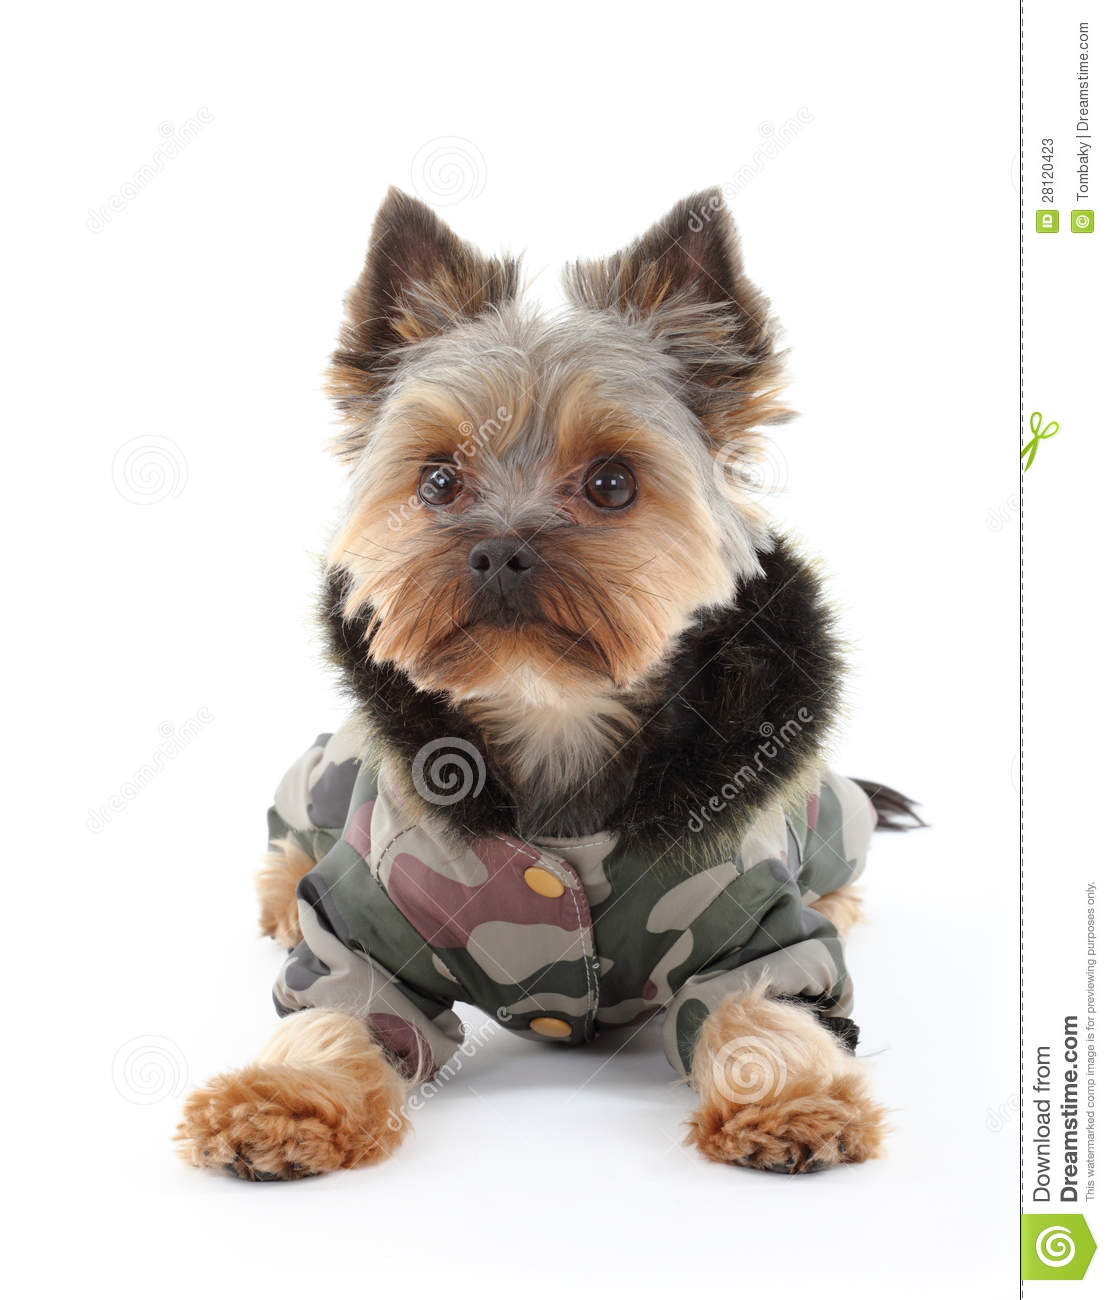 Yorkie Clothes Clothing Accessories And More Yorkie